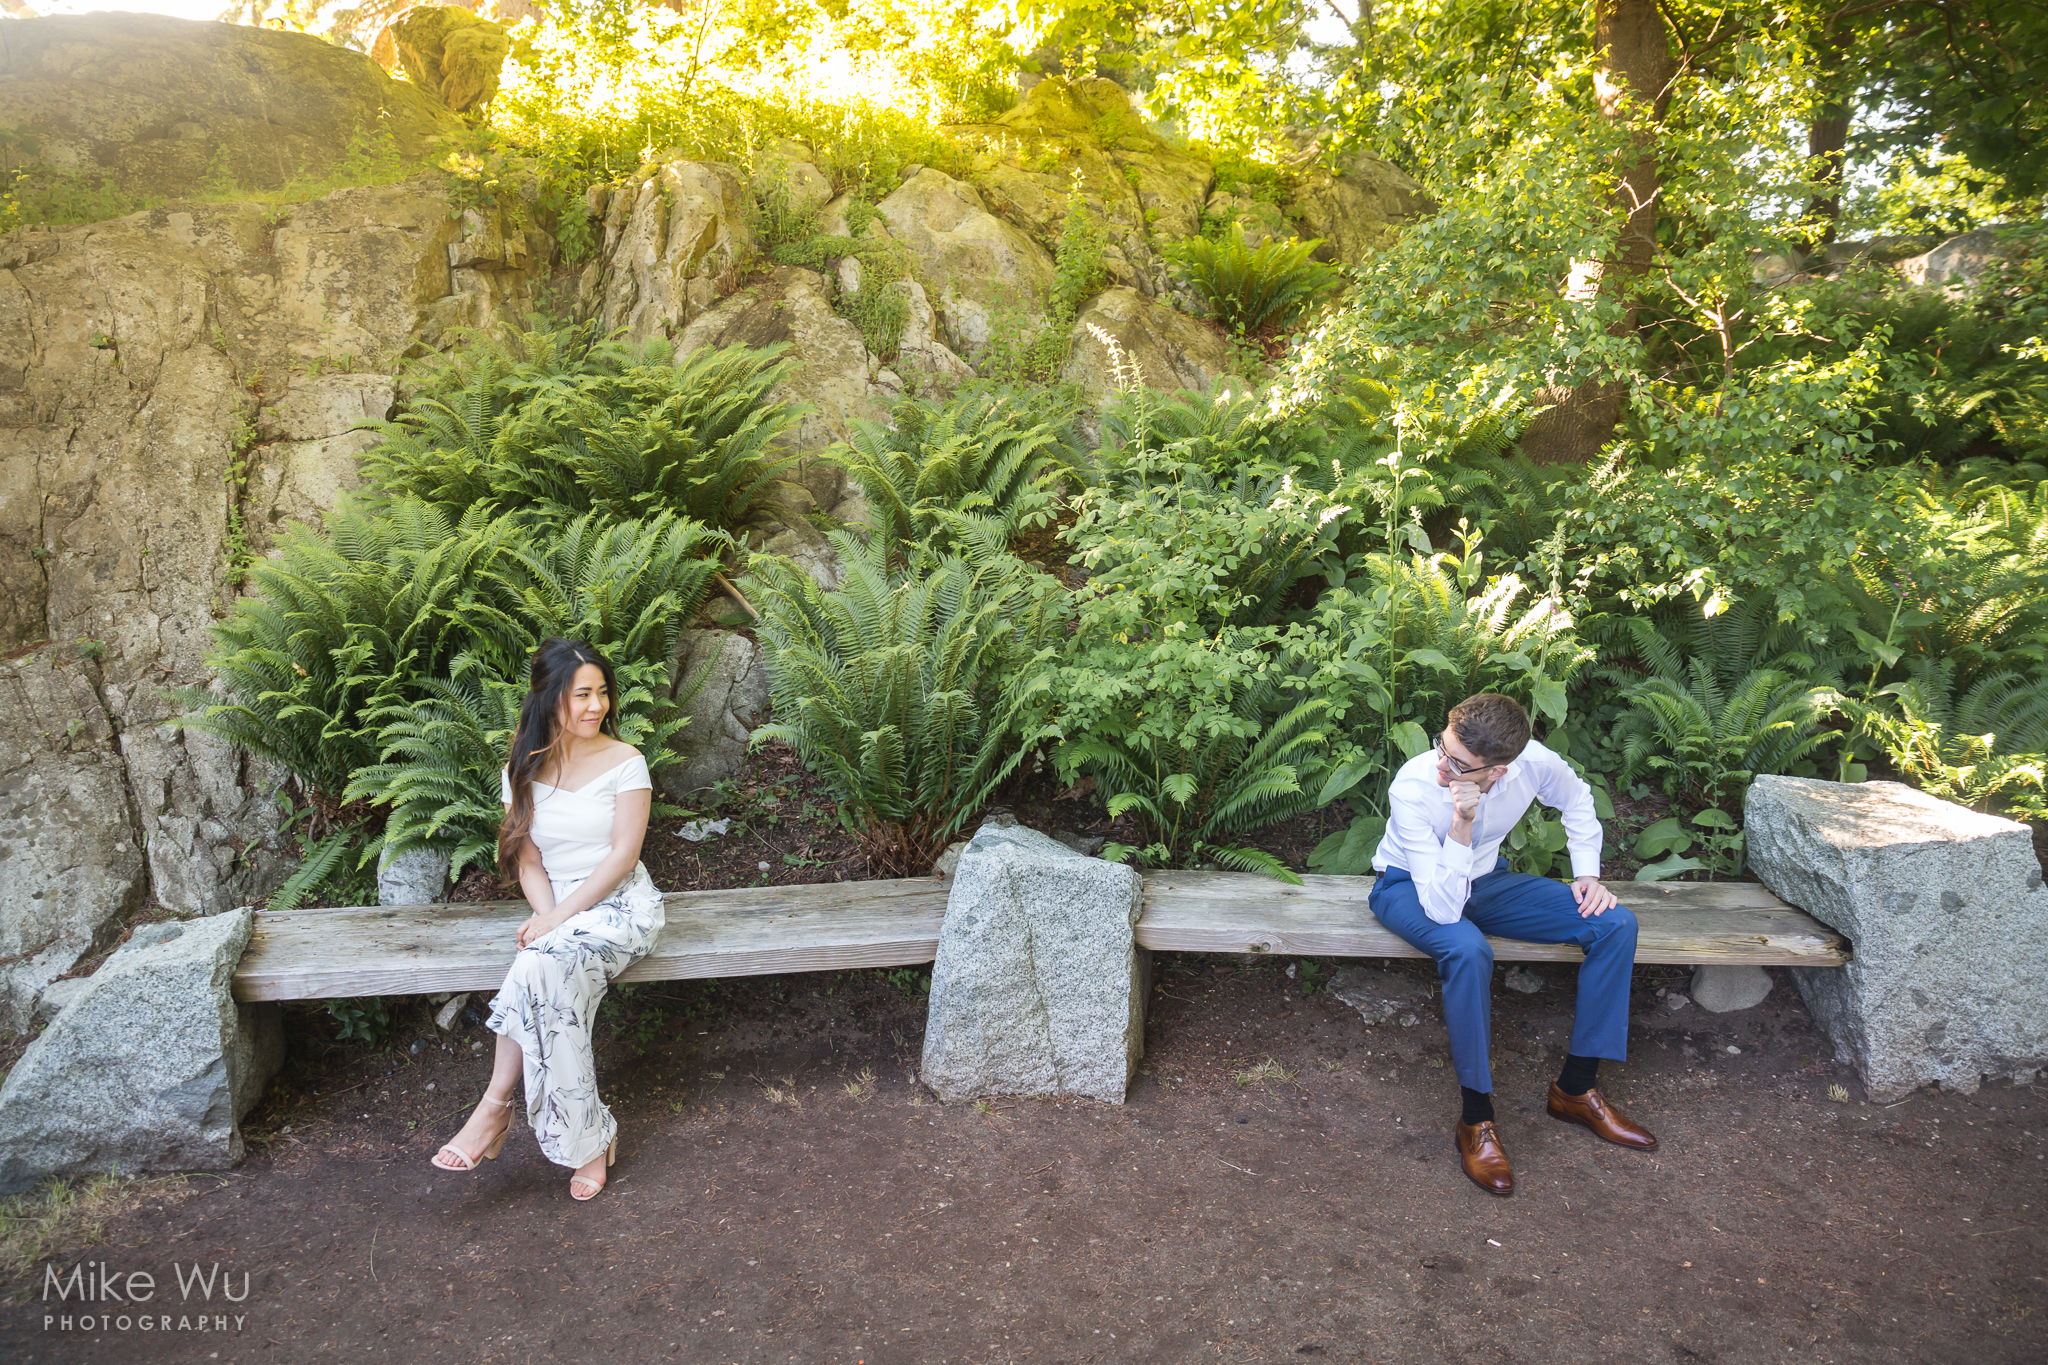 Vancouver, love, engagement, shoot, photography, North Vancouver, whytecliff partk, couple, lovely, benches, bushes, rainforest, rocks, sunset, glow, environment, beautiful, photography, shoot, photoshoot, portraits, environment, matching, pair, destiny, park